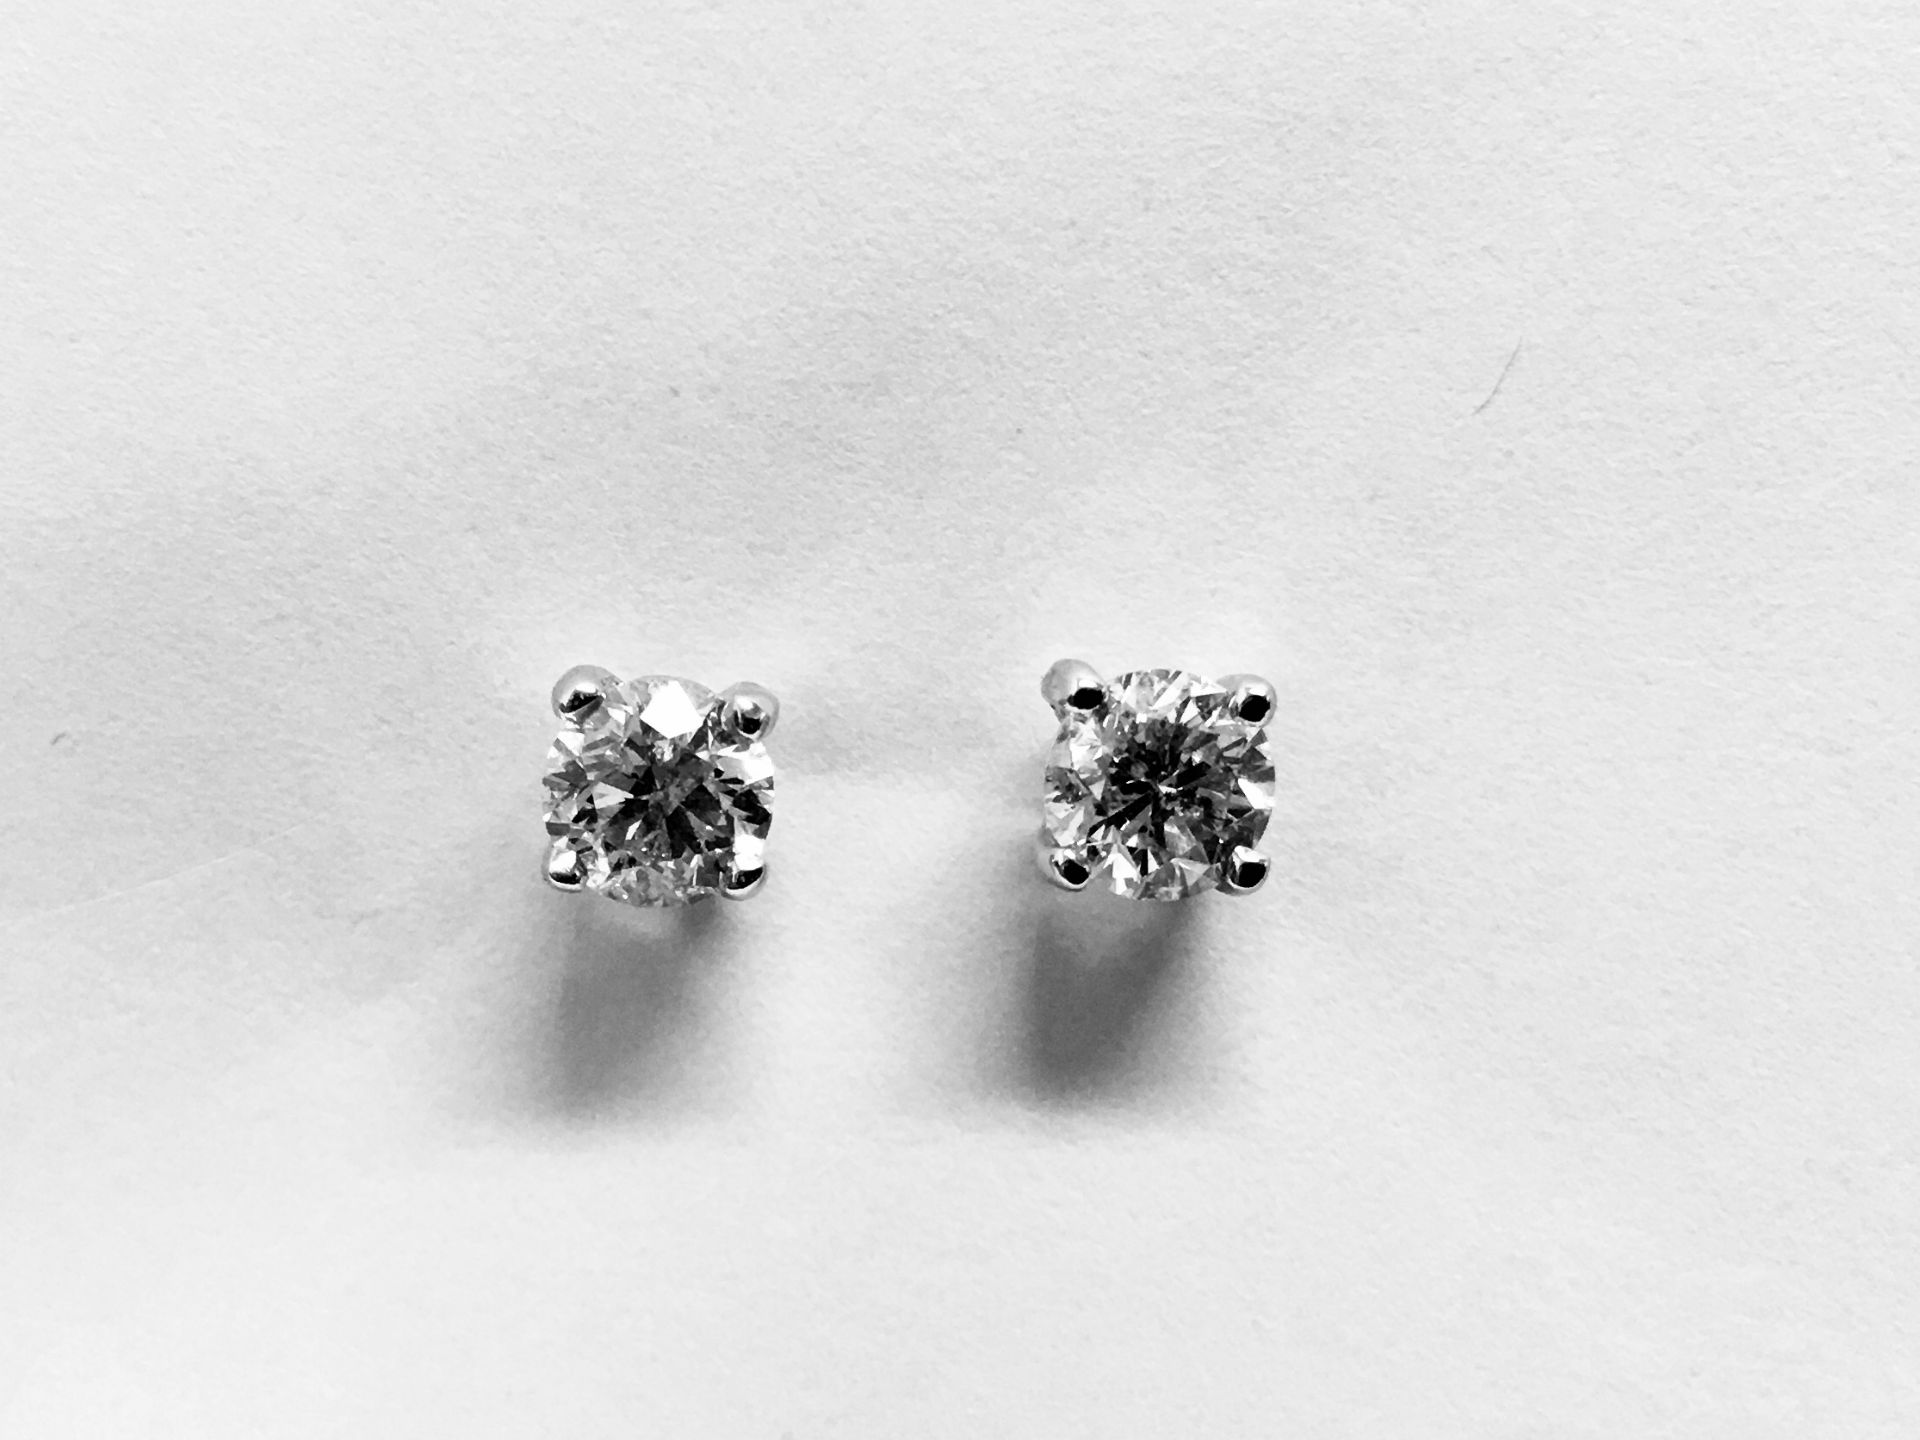 Lot 8 - 0.66ct Solitaire diamond stud earrings set with brilliant cut diamonds, i1 clarity and I colour. Set